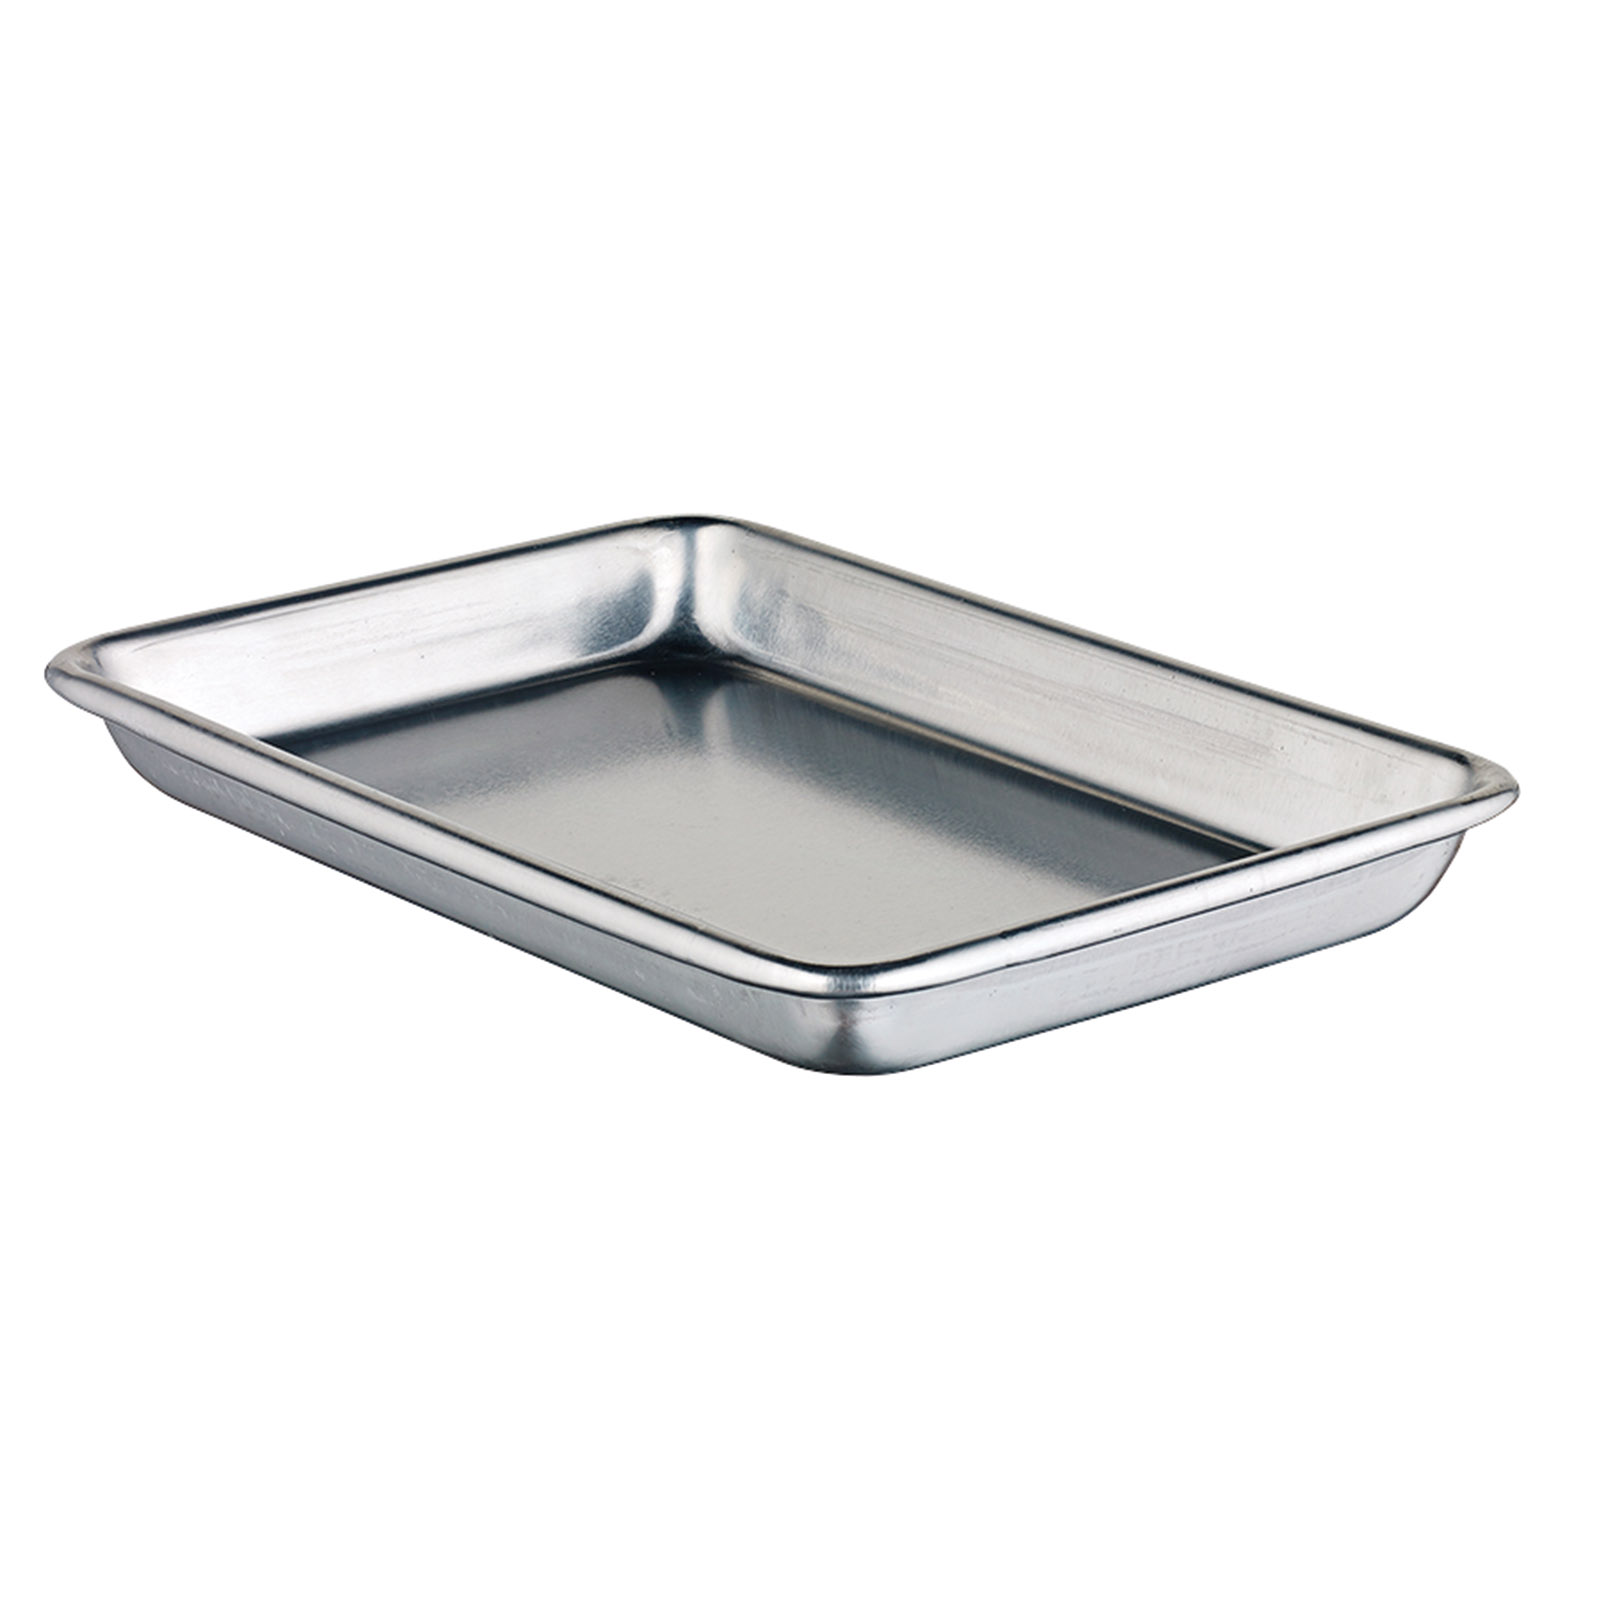 Winco ALXP-0609 bun / sheet pan